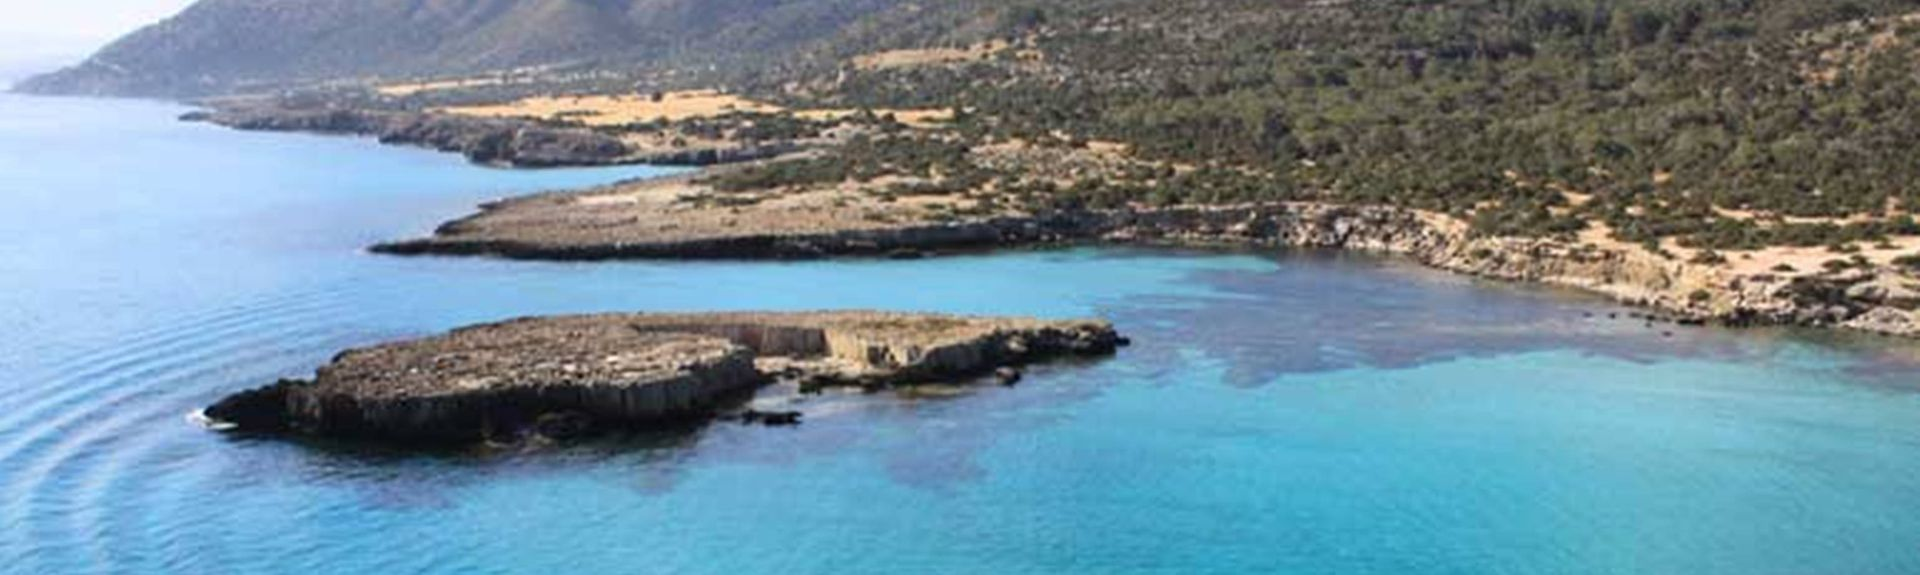 Letymvou, Cyprus